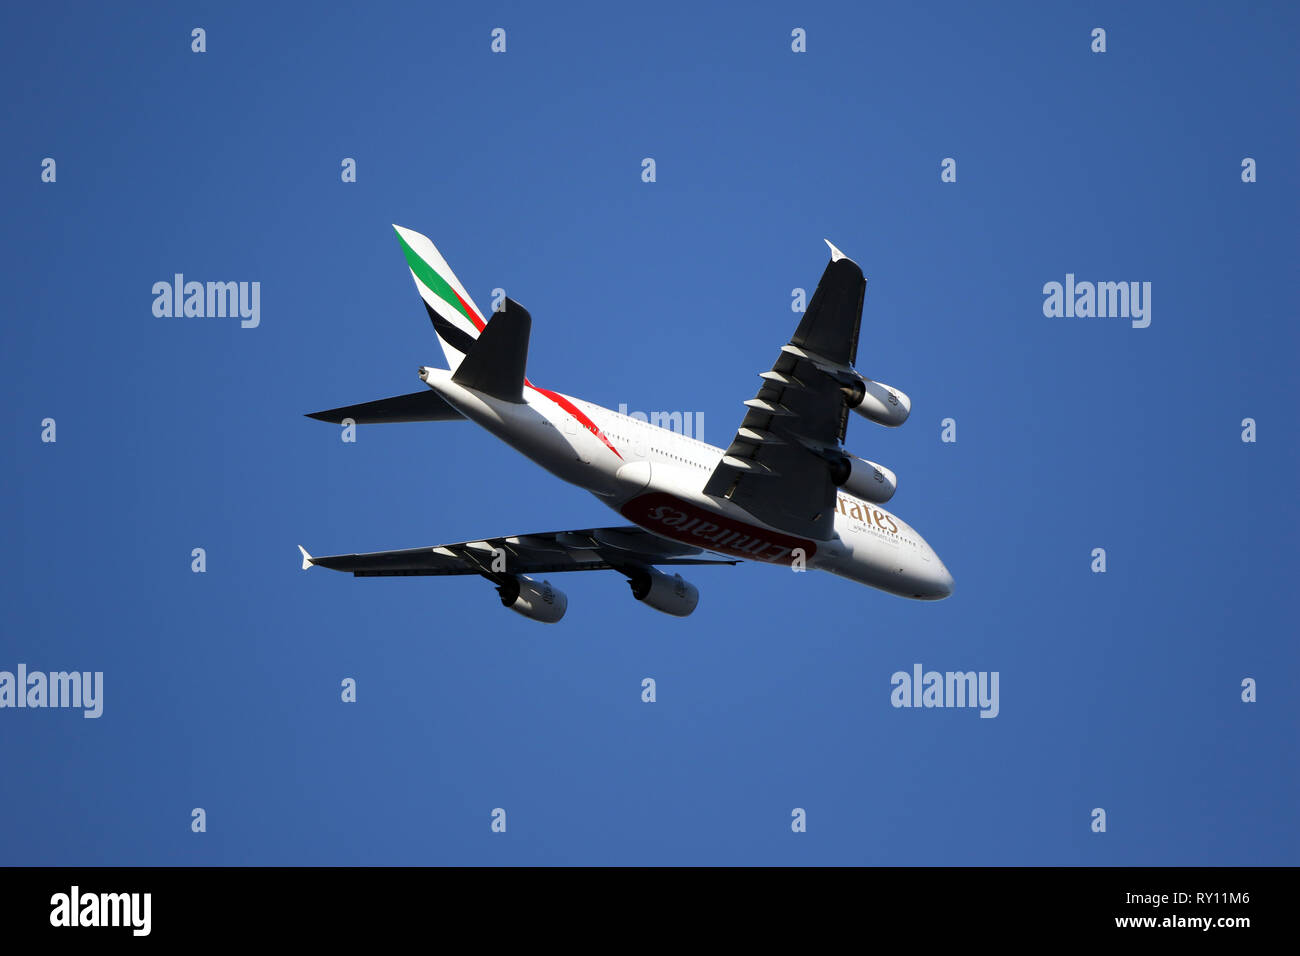 London, UK. 10th Mar, 2019. An Emirates airplane flies above The Emirates Stadium at the Arsenal v Manchester United English Premier League football match at The Emirates Stadium, London, on March 10, 2019. Credit: Paul Marriott/Alamy Live News Stock Photo